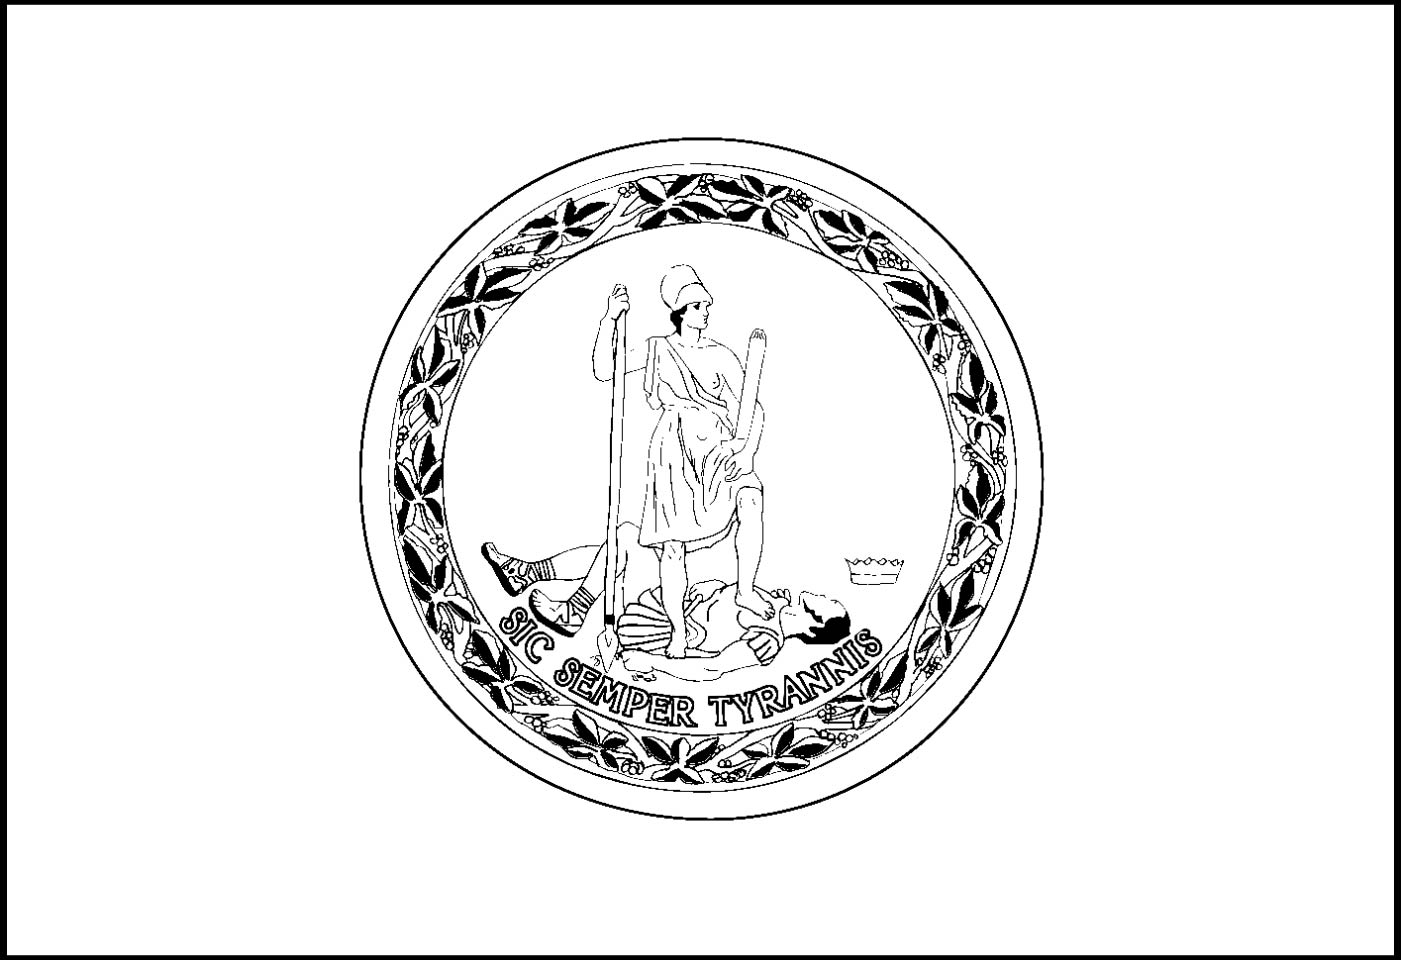 virginia state flag coloring page virginia state flag state flag page virginia coloring